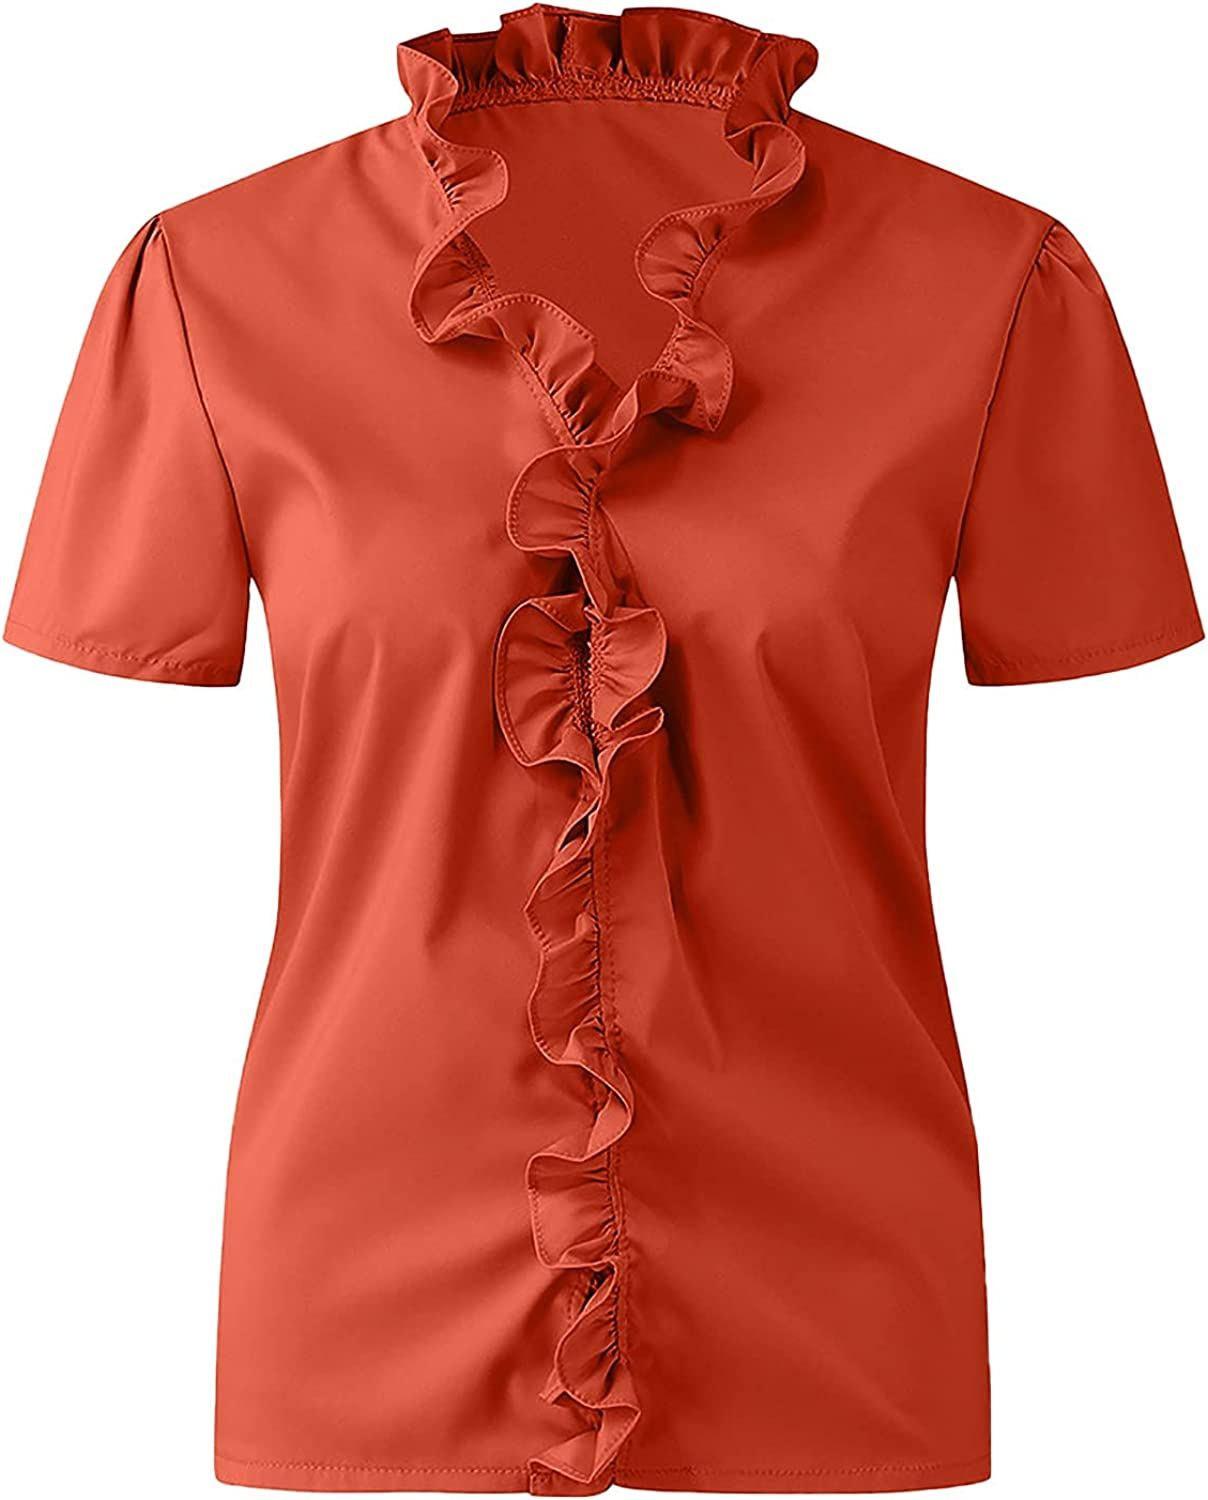 Women's Summer Dressy Top Ruffle Lace V Neck Short Sleeve and Long Sleeve Floral Print T Shirts Blouse